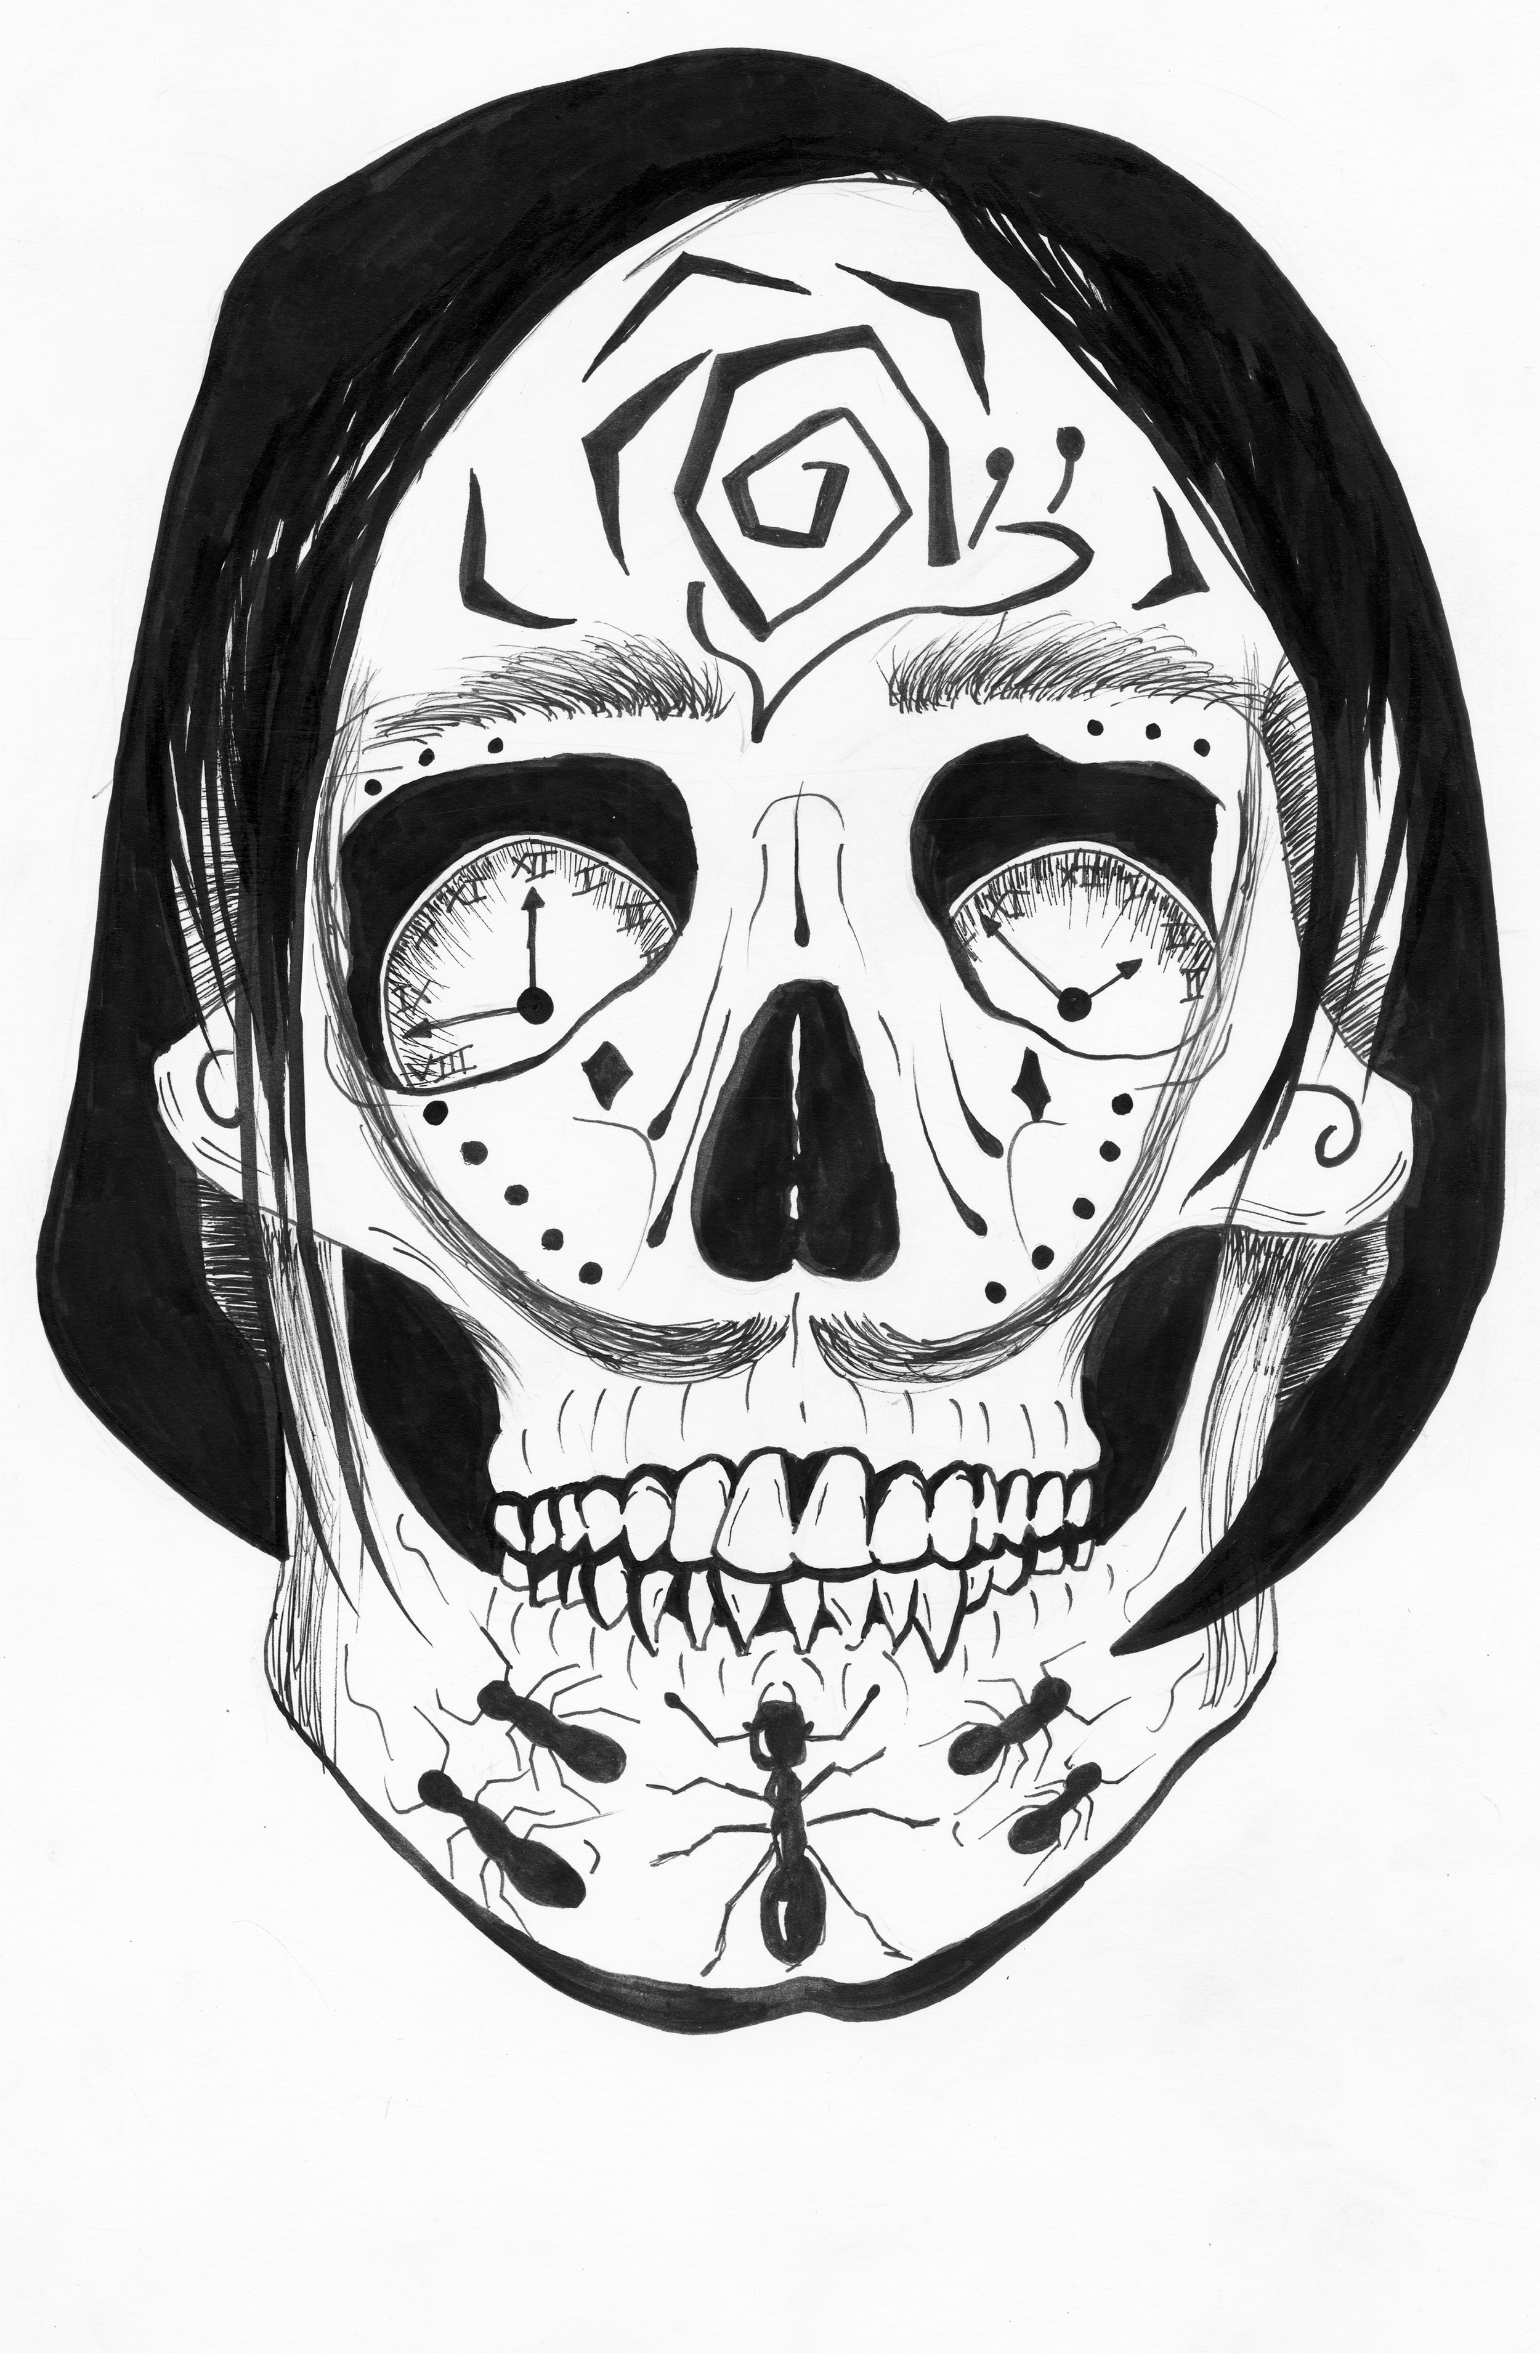 This Salvador Dali Sugar Skull Design is available for purchase on a white v-neck for $15.